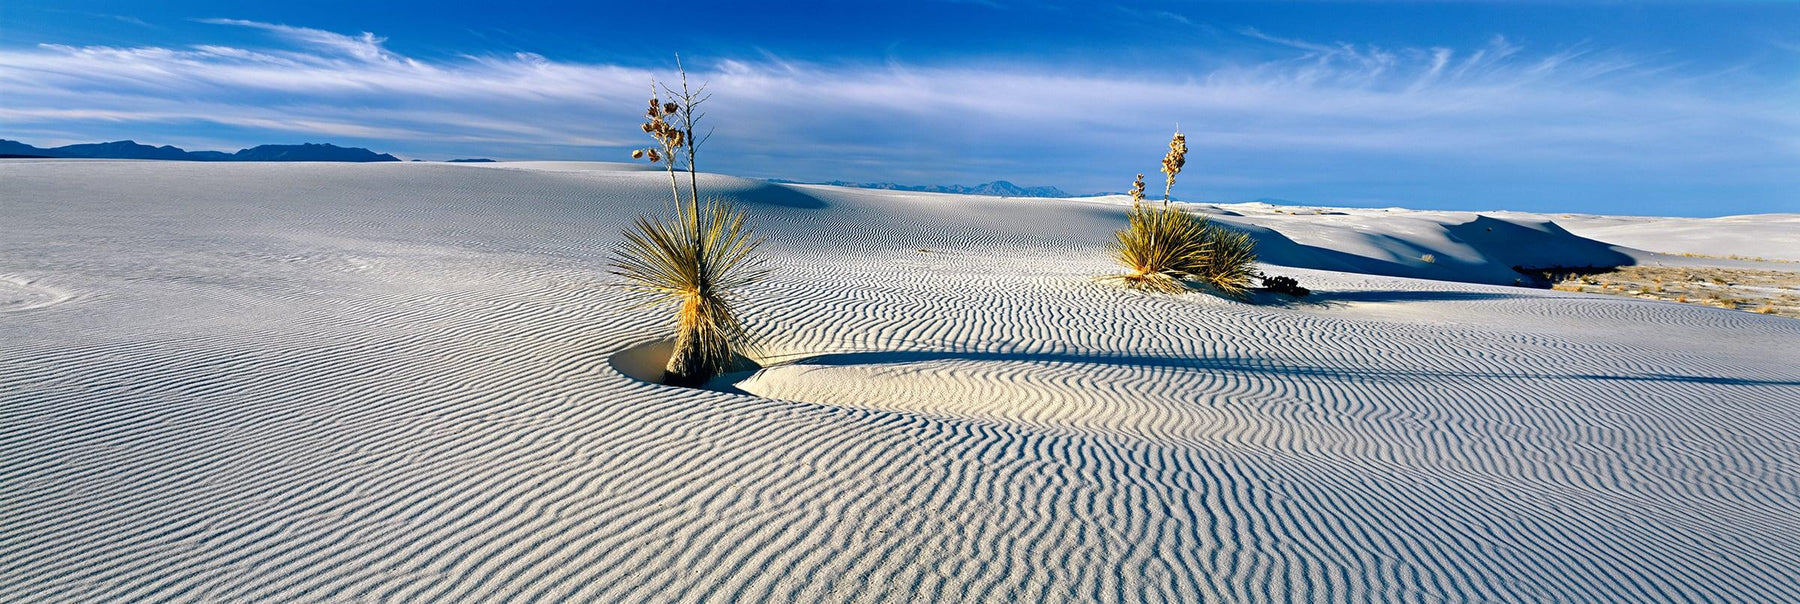 Two Yucca plants growing in the windswept  sand dunes of White Sand Dunes National Monument New Mexico